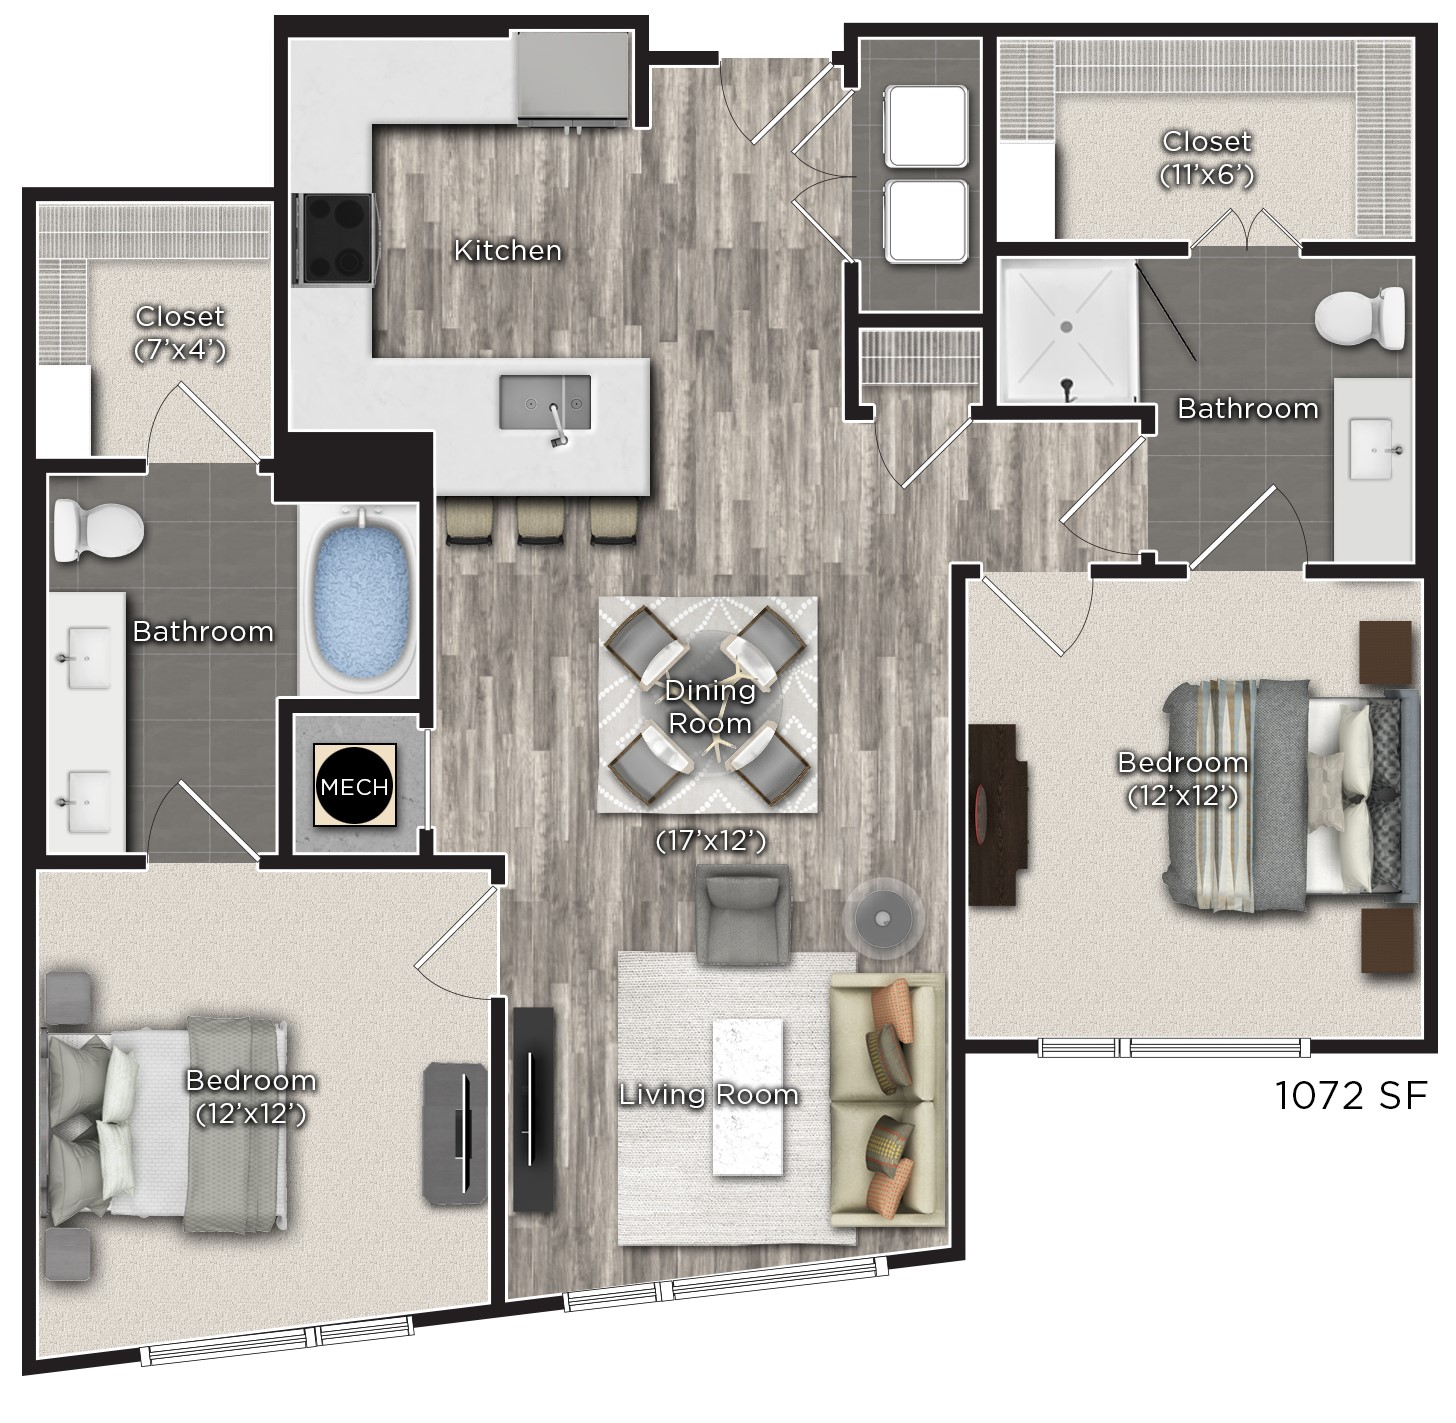 Tens on West - Floorplan - O